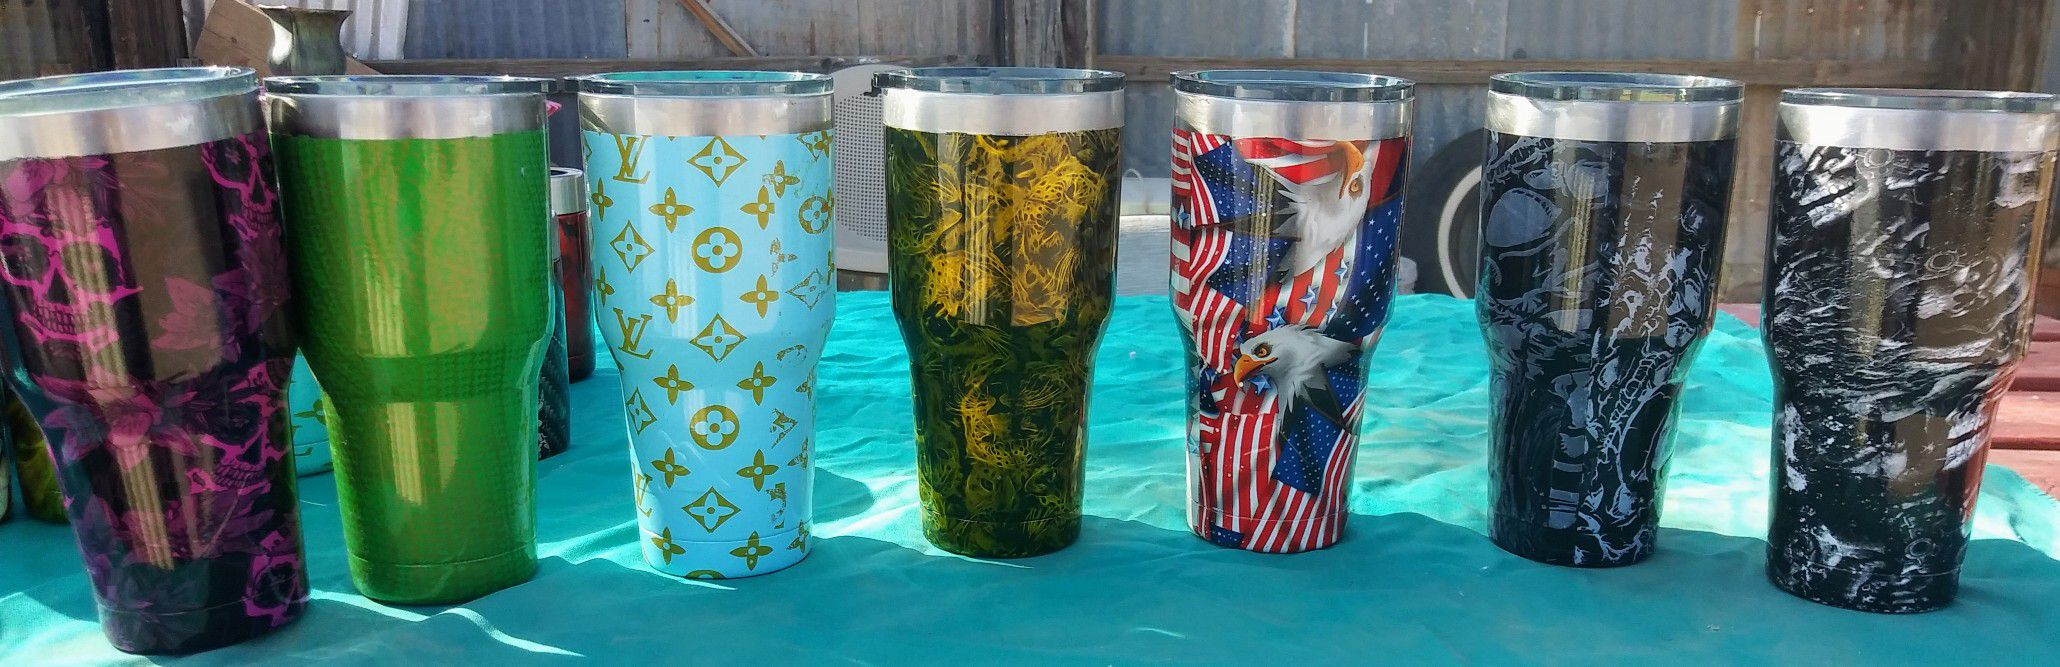 Cups for hot or cold item's Hydro dip painting on outside. Small one's hold a can for soda or beer other items can be painted as well.